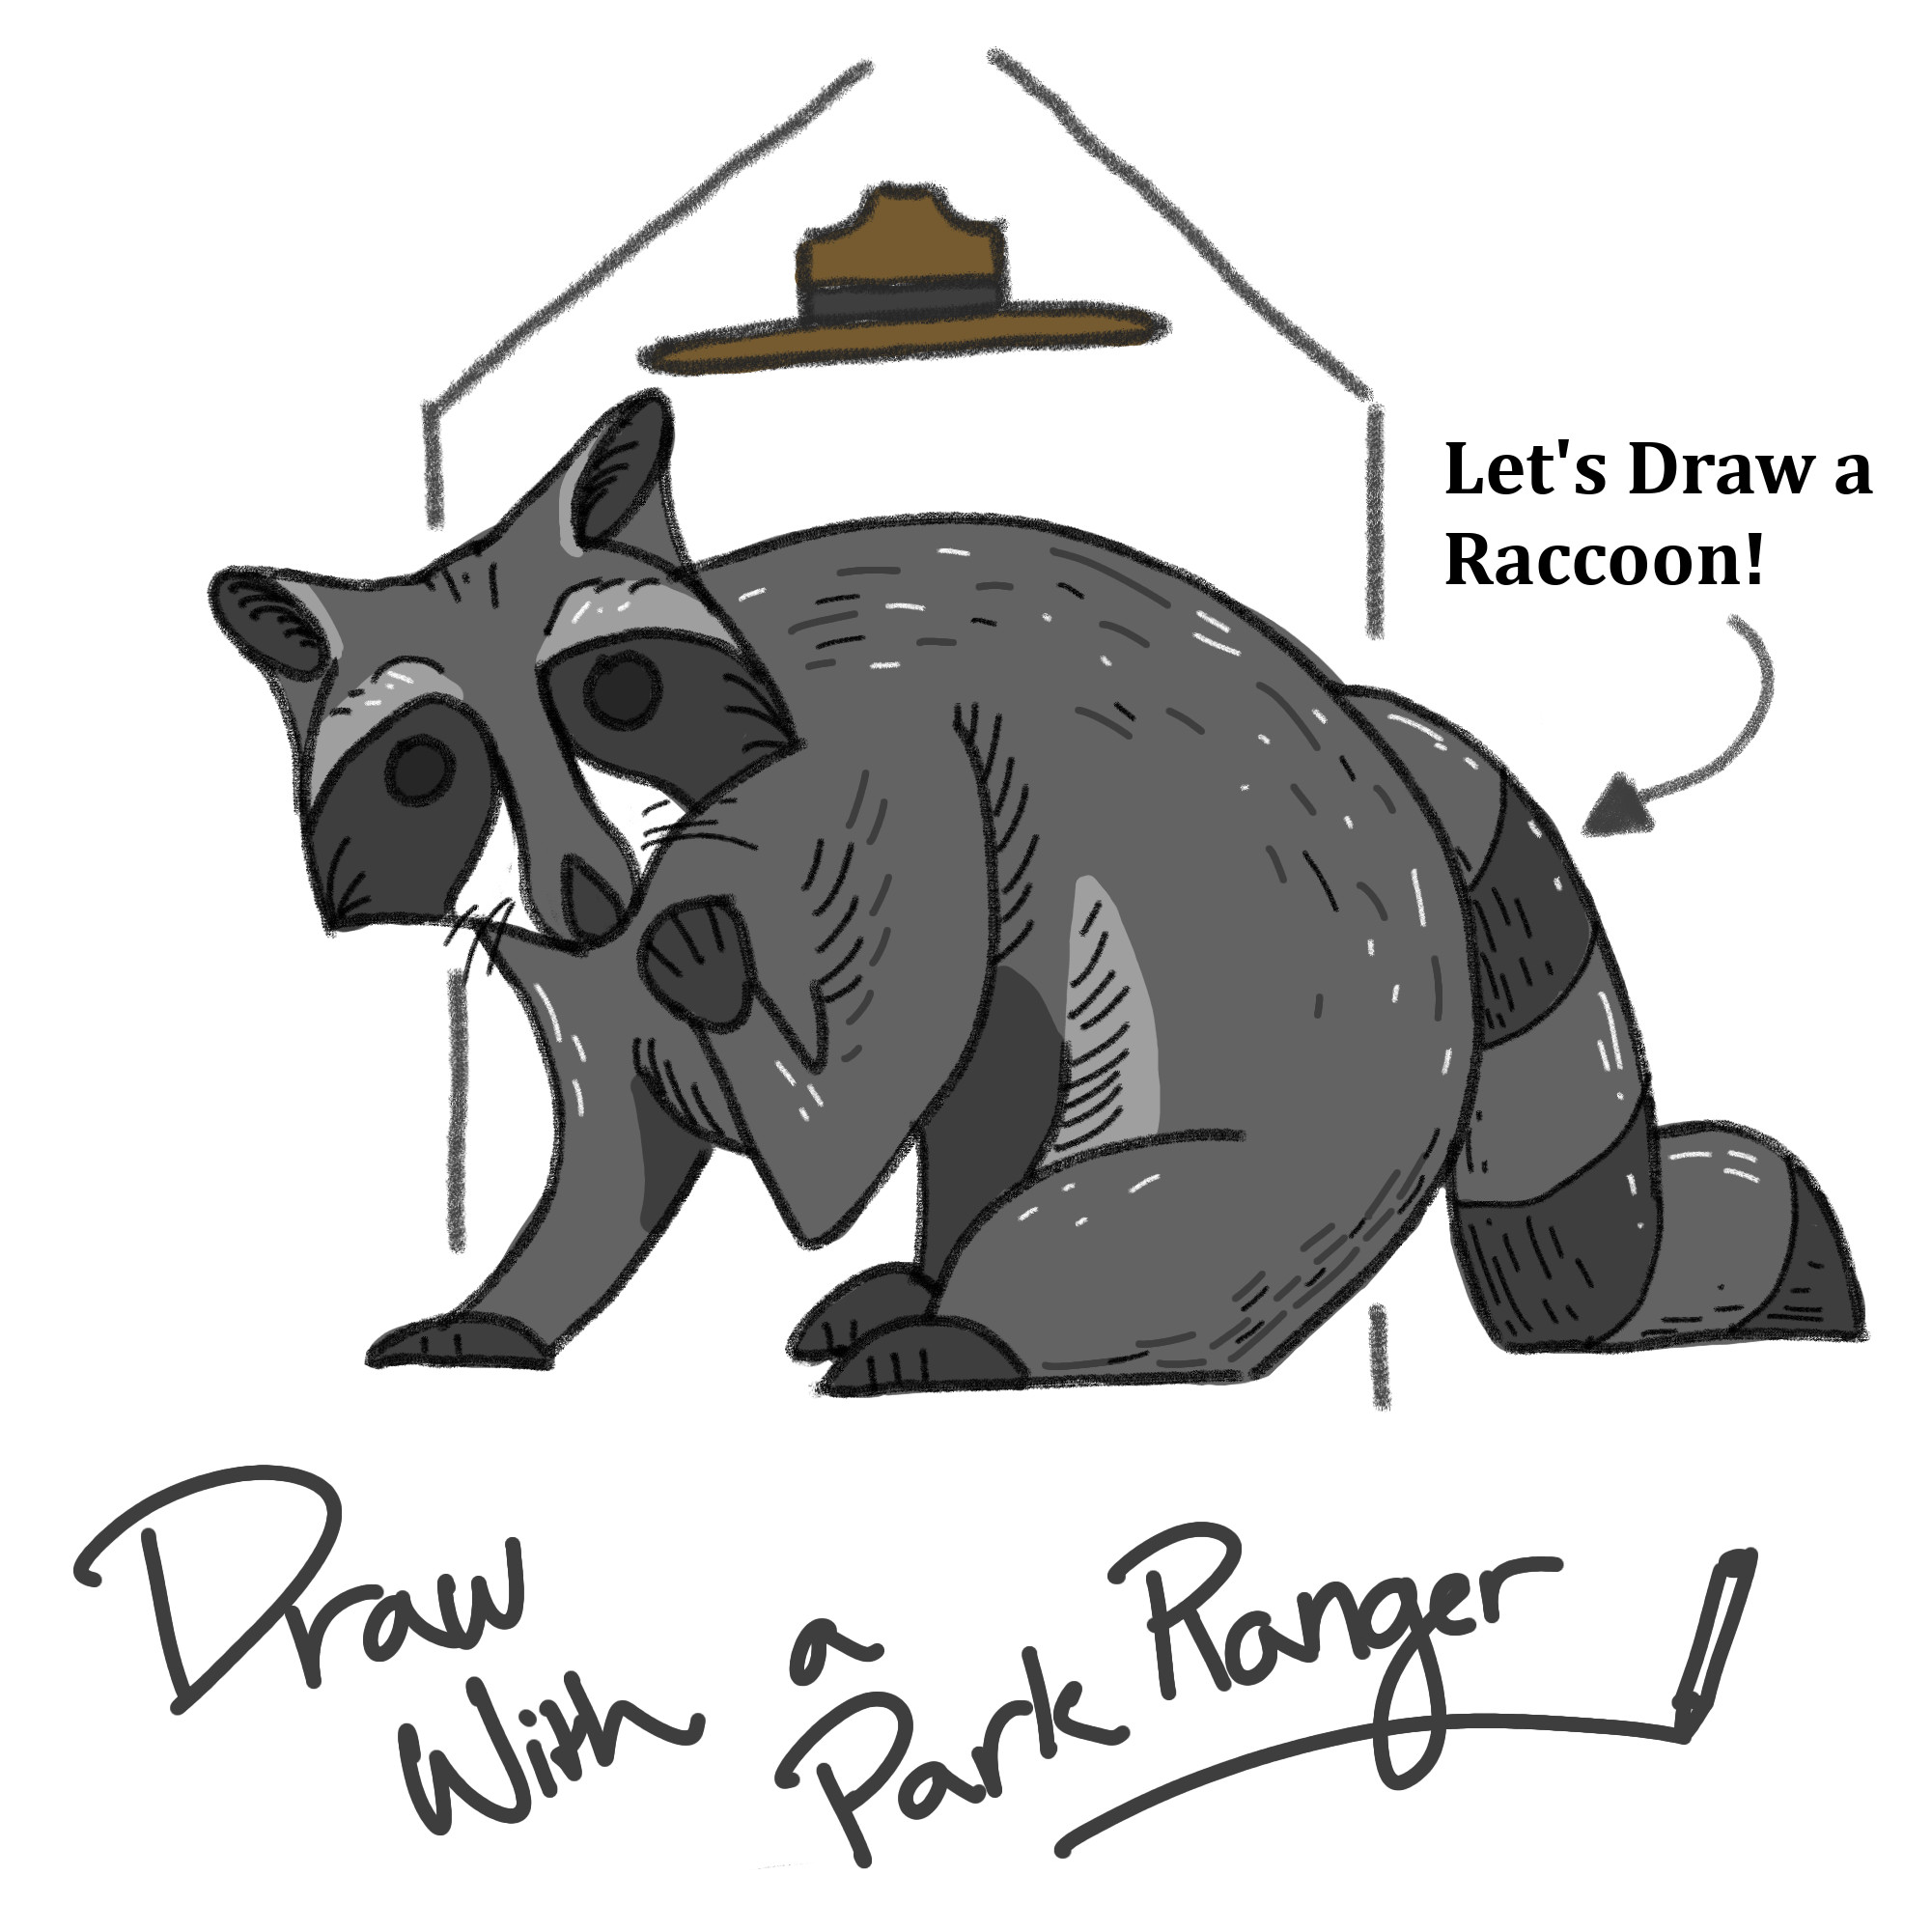 Draw with a ranger. A sketched final picture of a raccoon